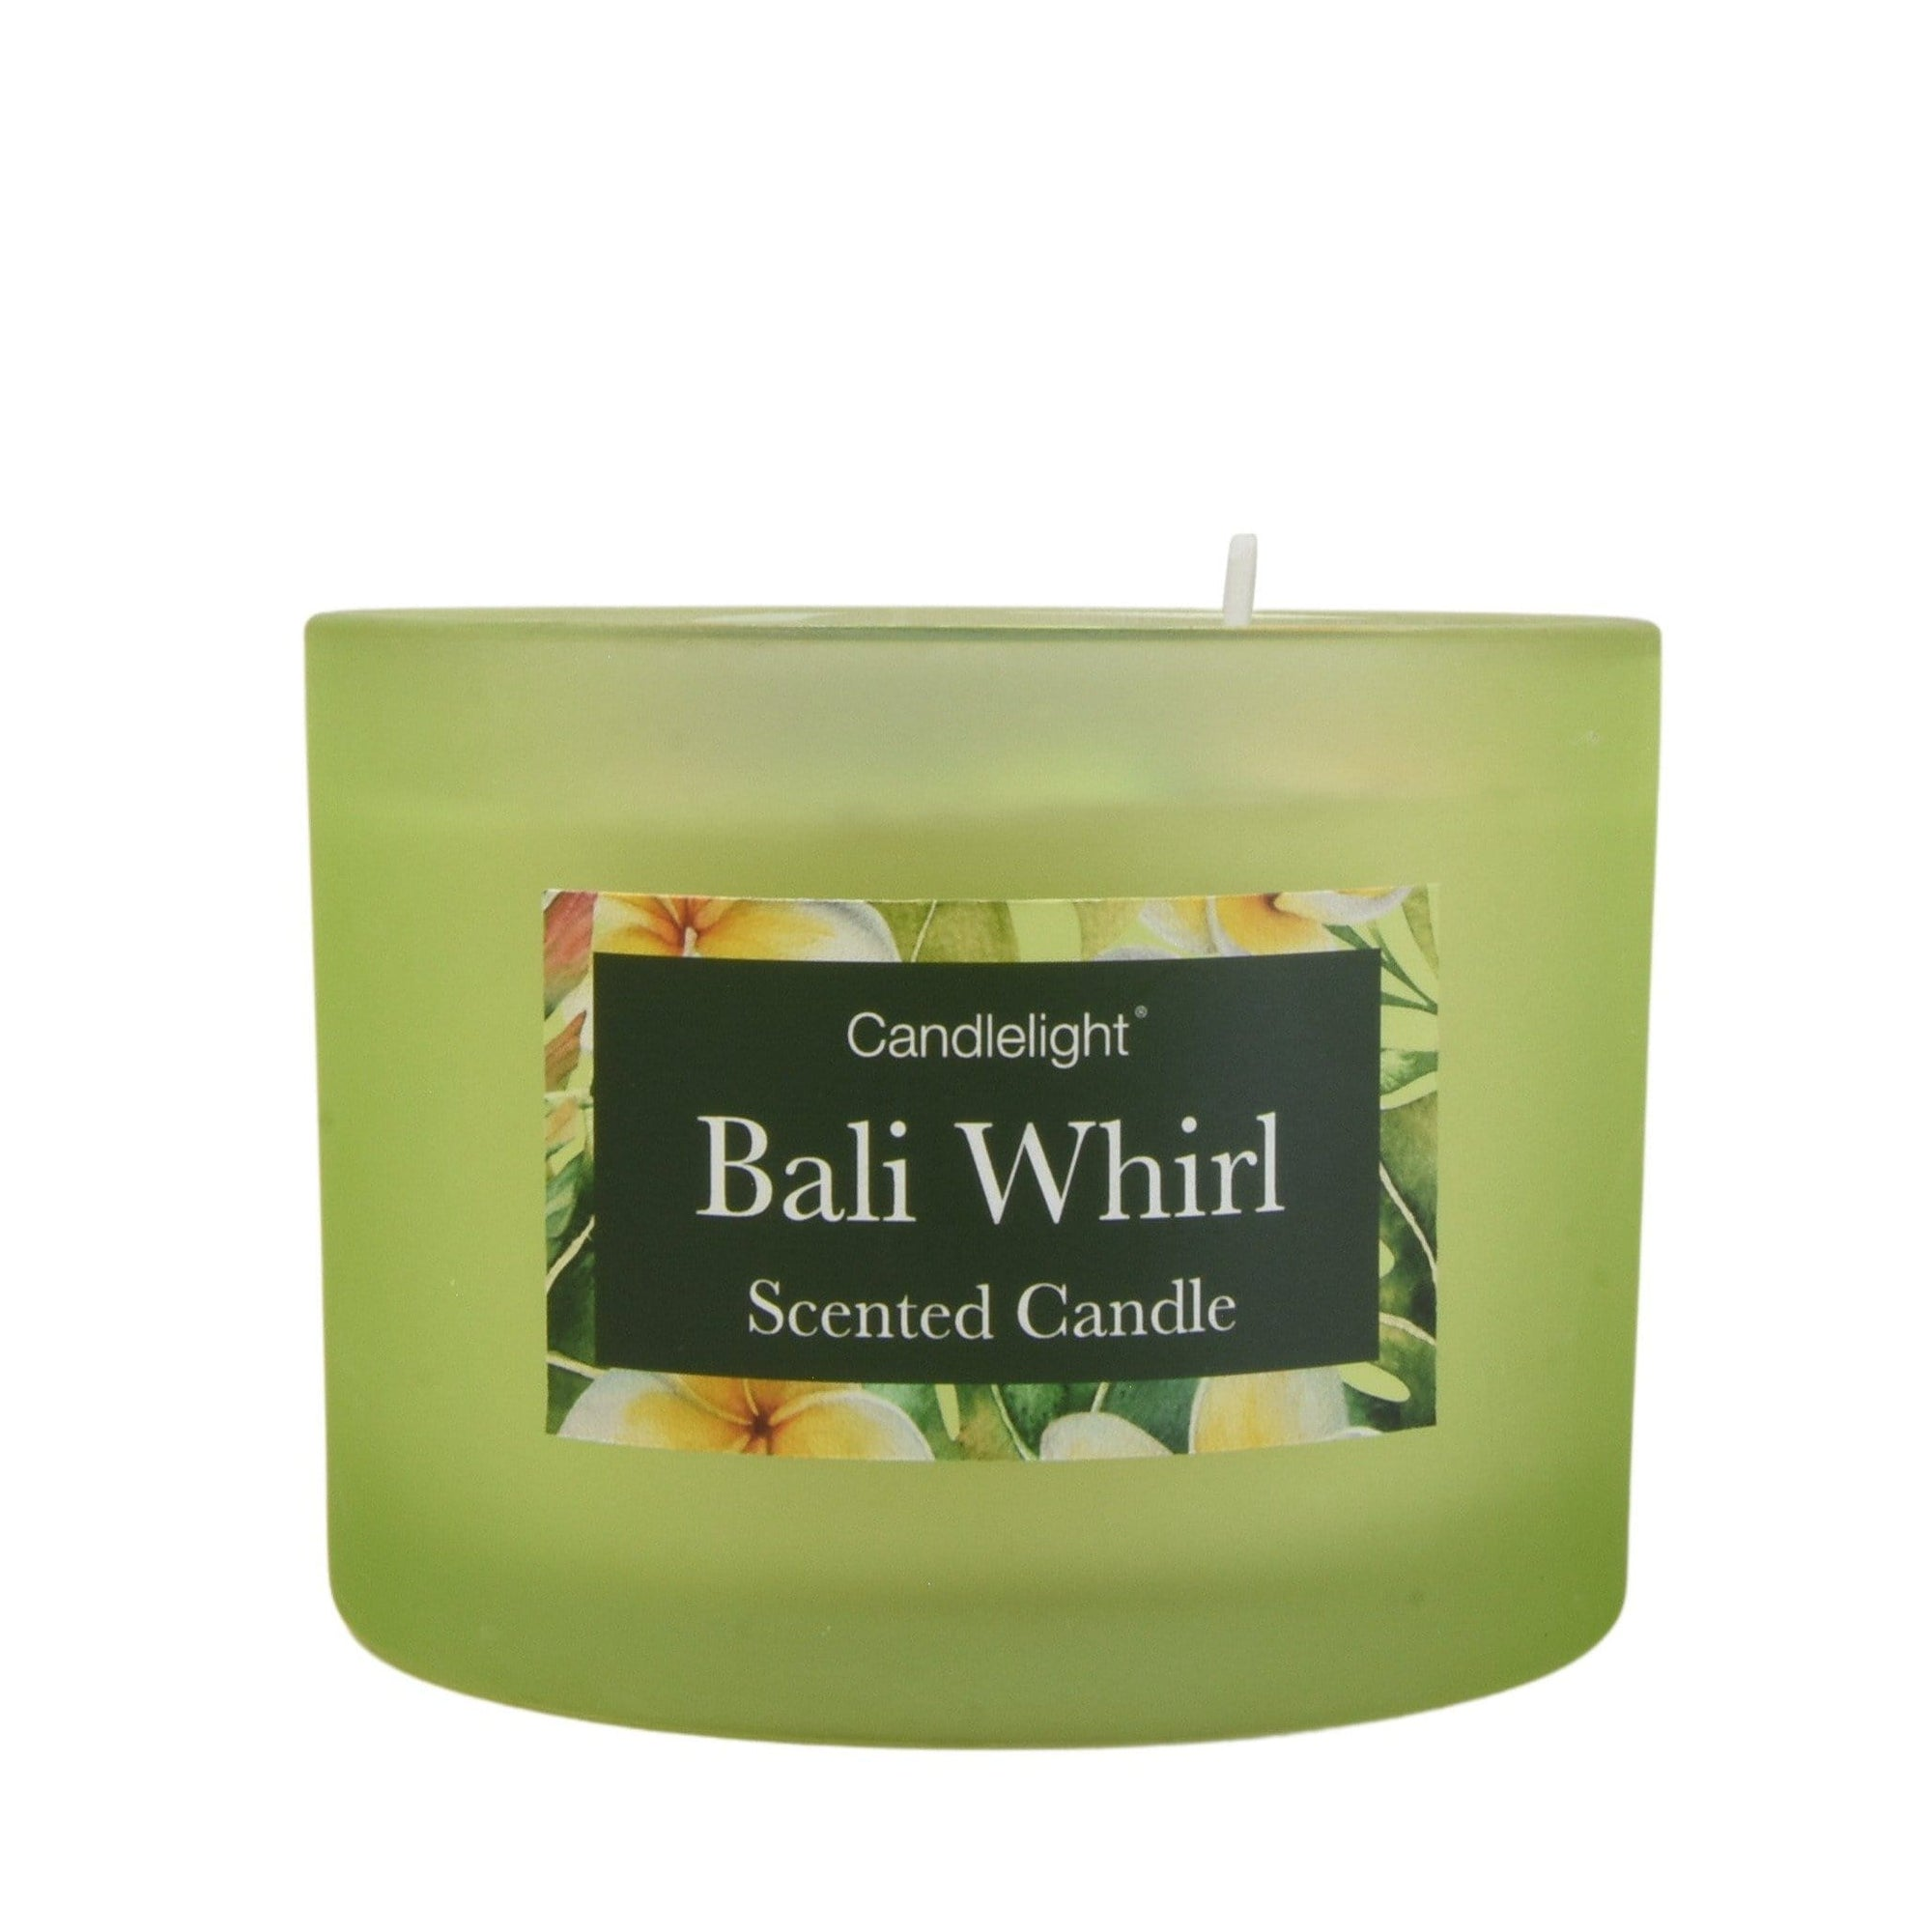 Bali Whirl 2 Wick glass filled Pot Candle Sea Salt Scent 380g 6PK